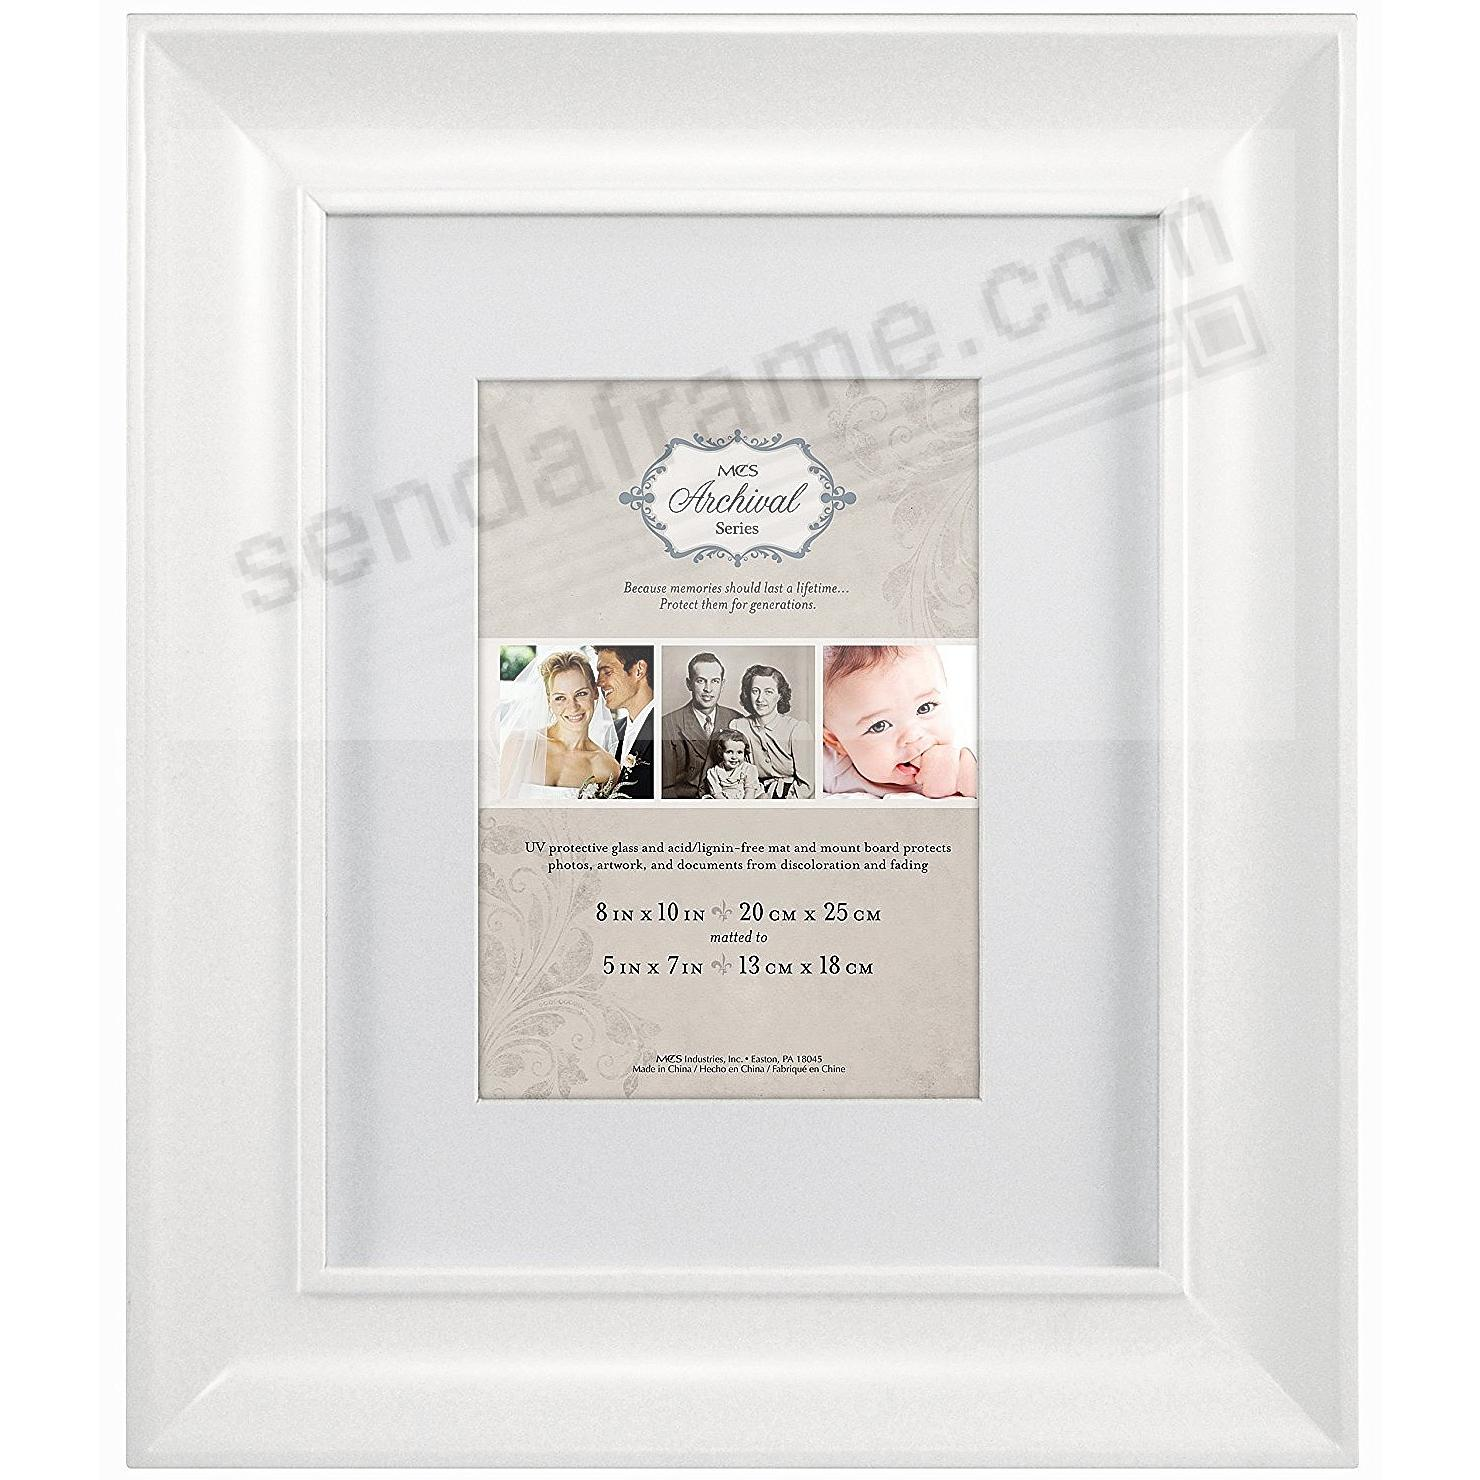 White ARCHIVAL Matted Wood frame 8x10/5x7 by MCS®